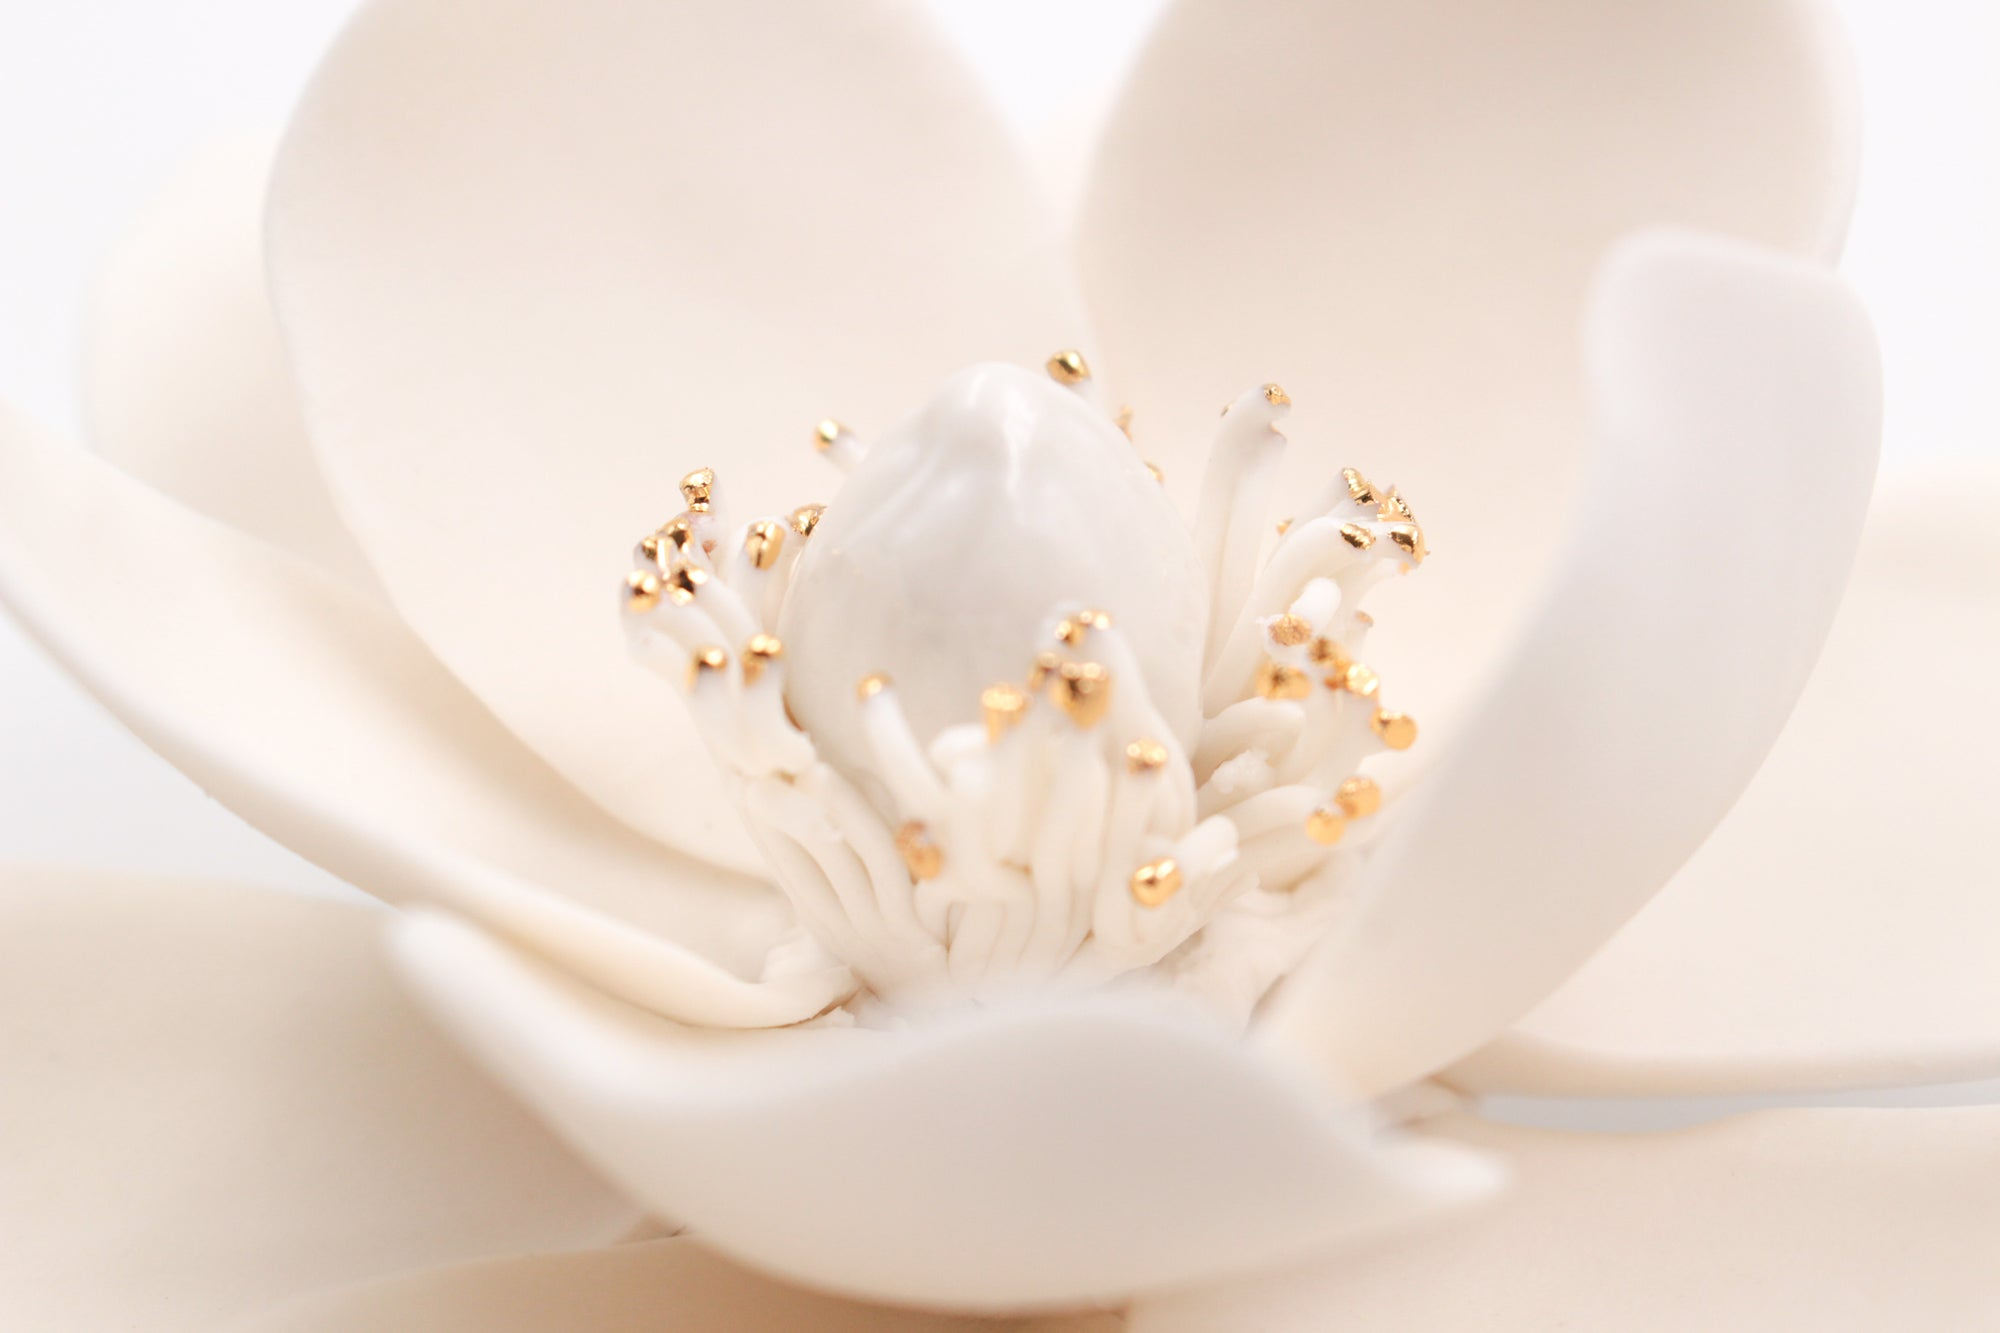 Golden Porcelain Magnolia- Handmade Porcelain Flower for Interior and Event Decoration - Made in France by Alain Granell – Home and Wall Decoration